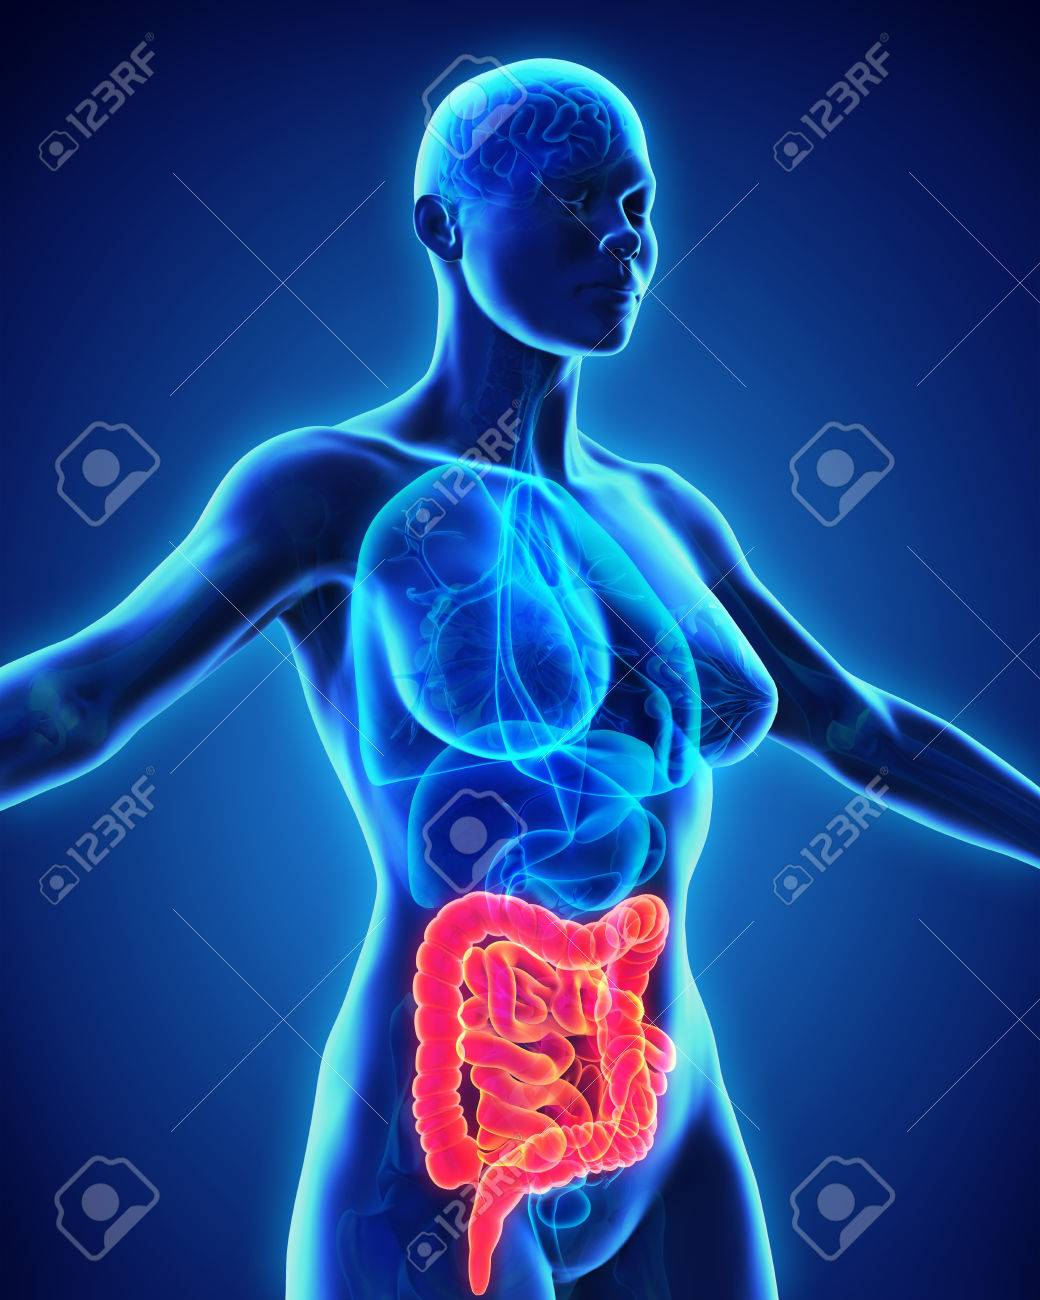 Human Intestine Anatomy Stock Photo Picture And Royalty Free Image